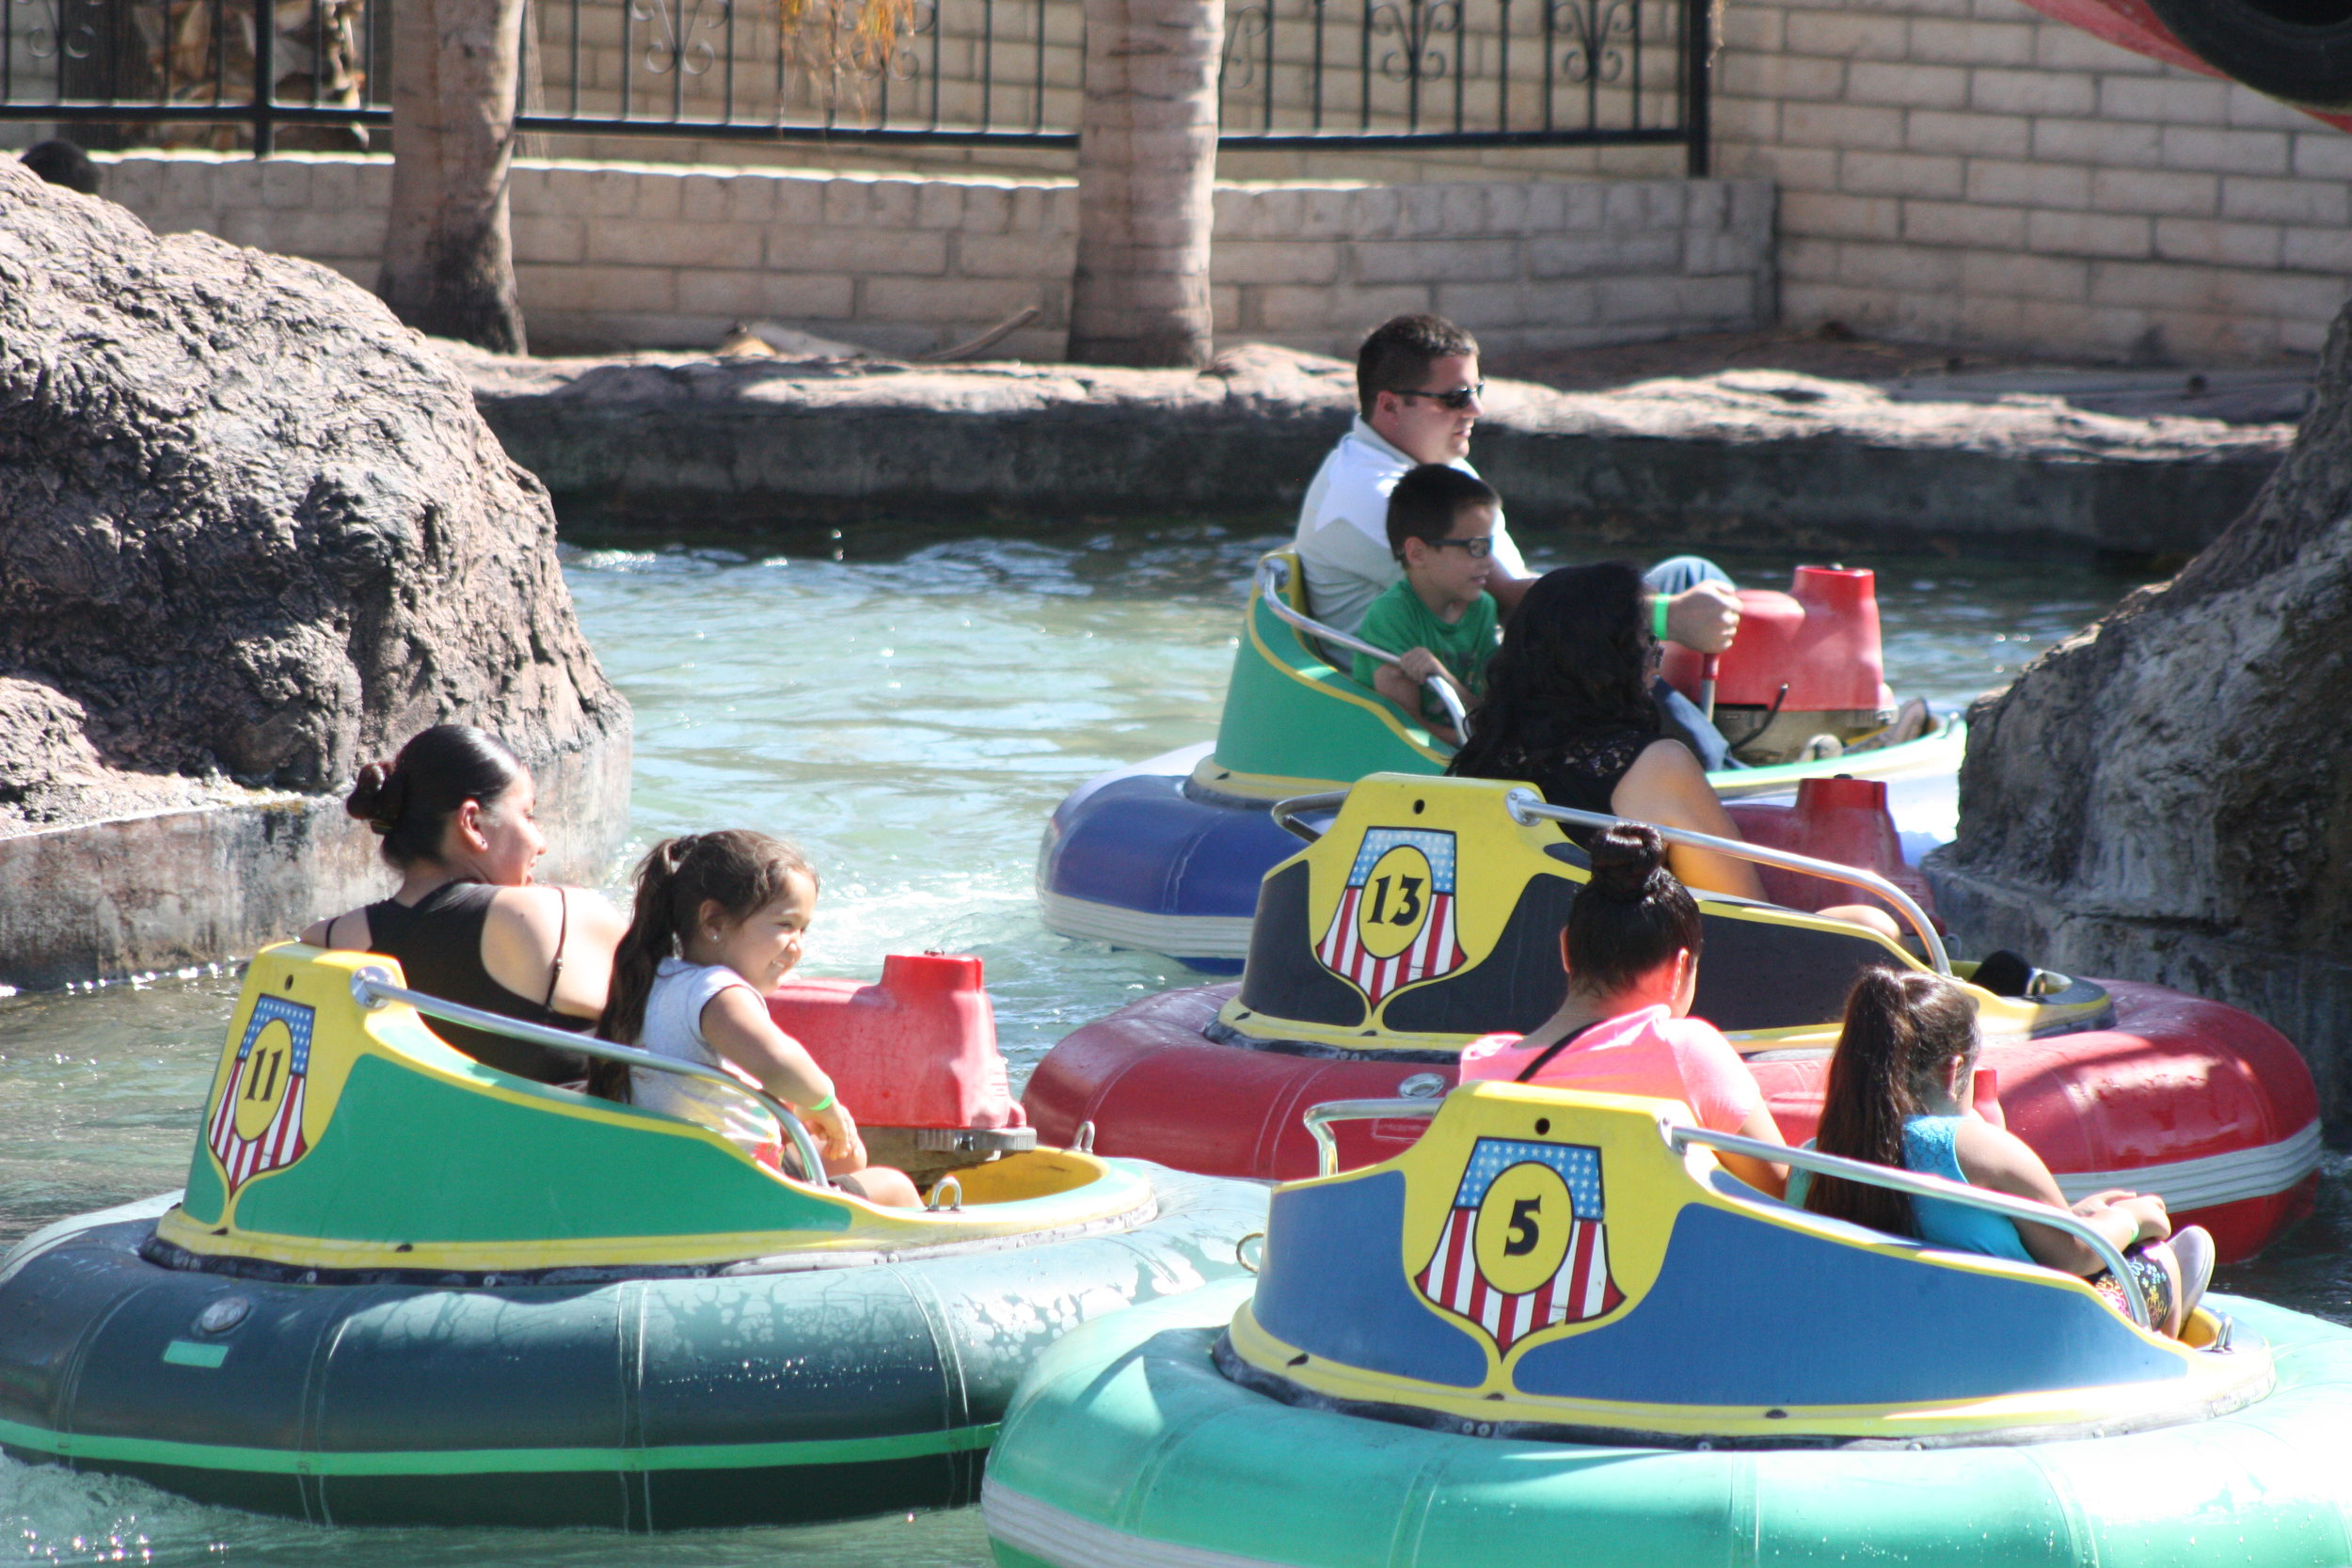 Photo of people having fun on the bumper boats.